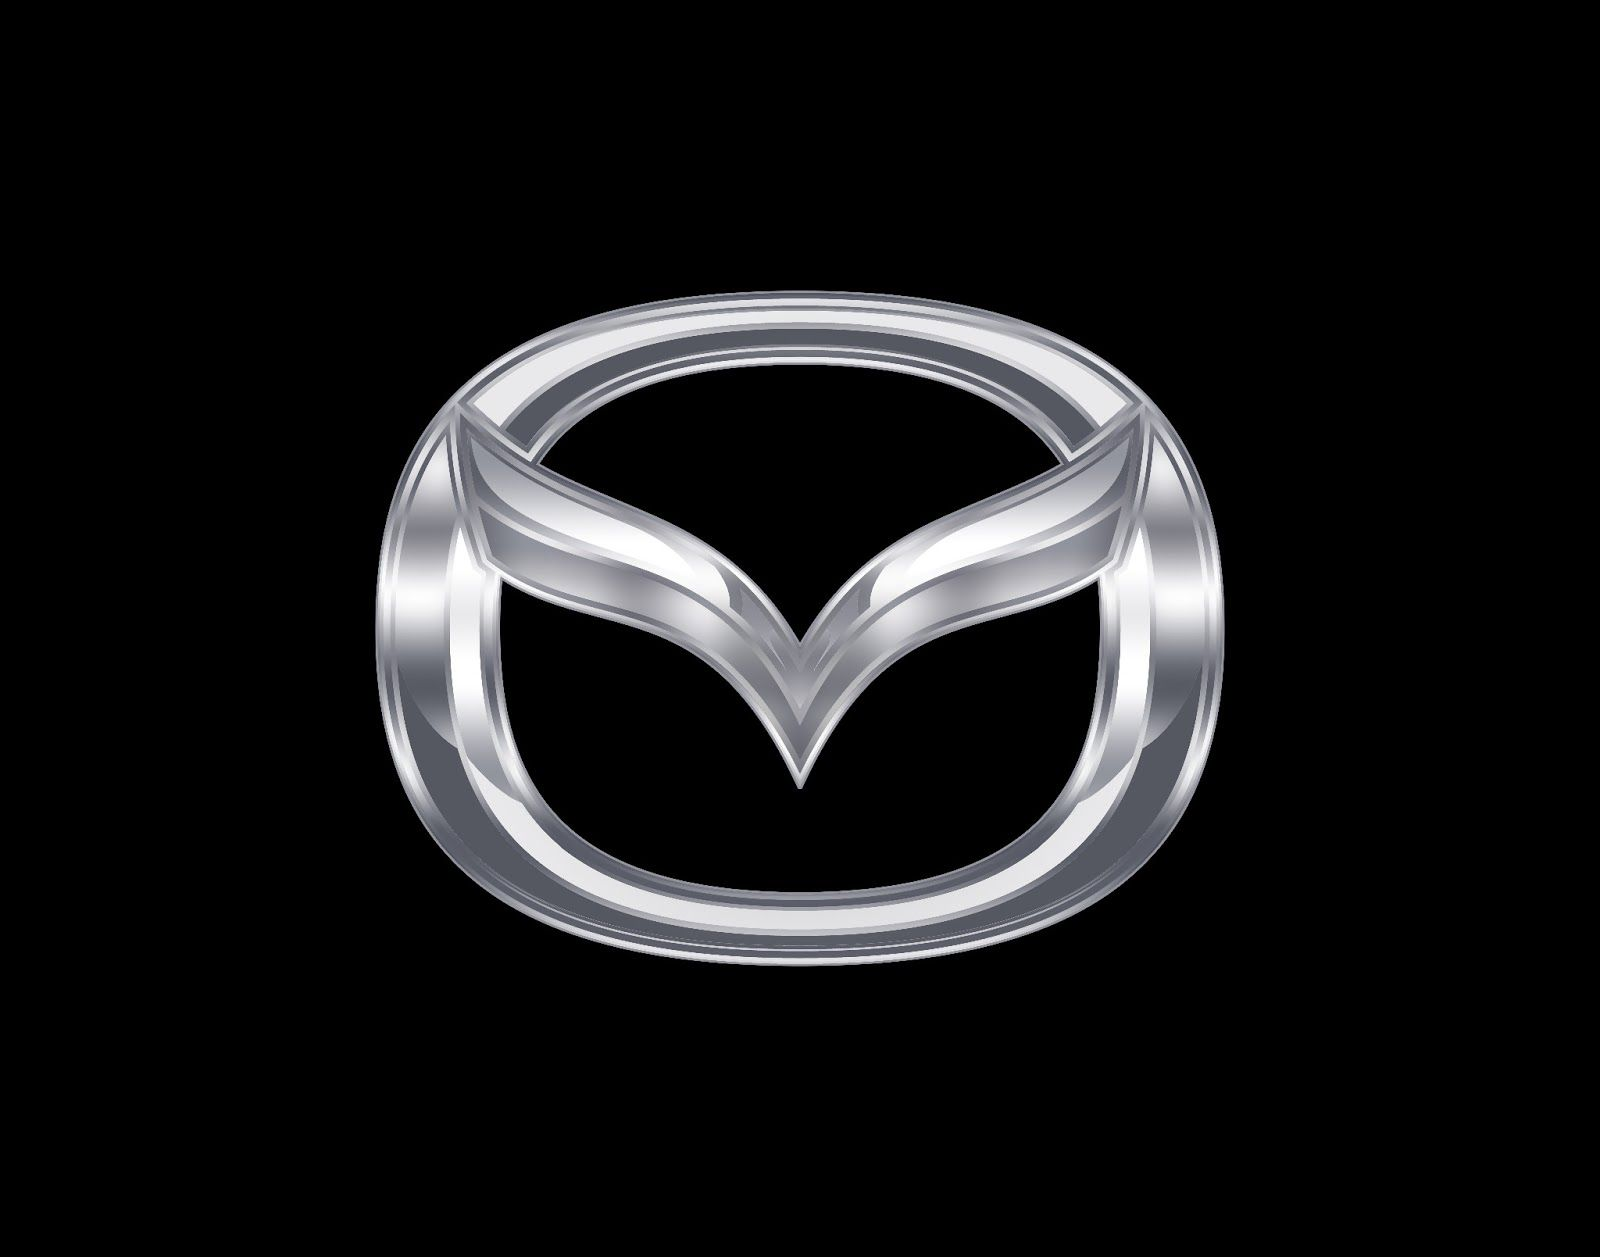 mazda logo wallpaper #10